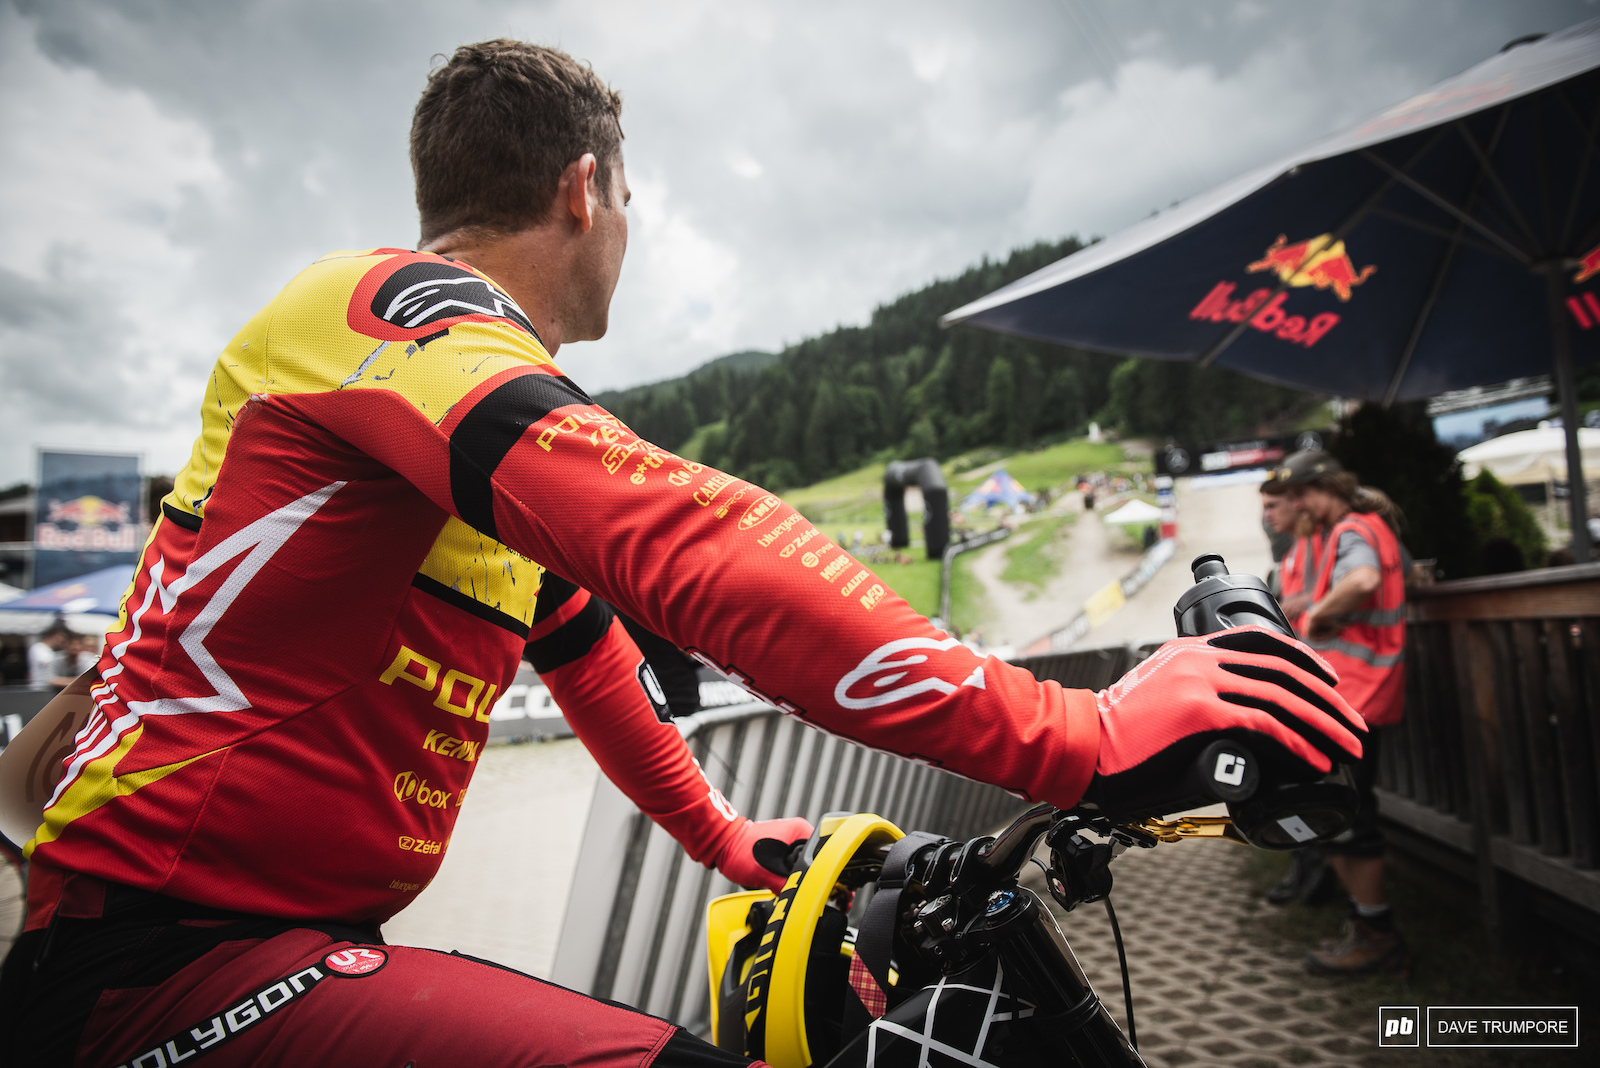 After not making the finals last week Mick Hannah was all nerves at the finish in Leogang. But all is well and he can now rest easy knowing he made the big show in Austria.